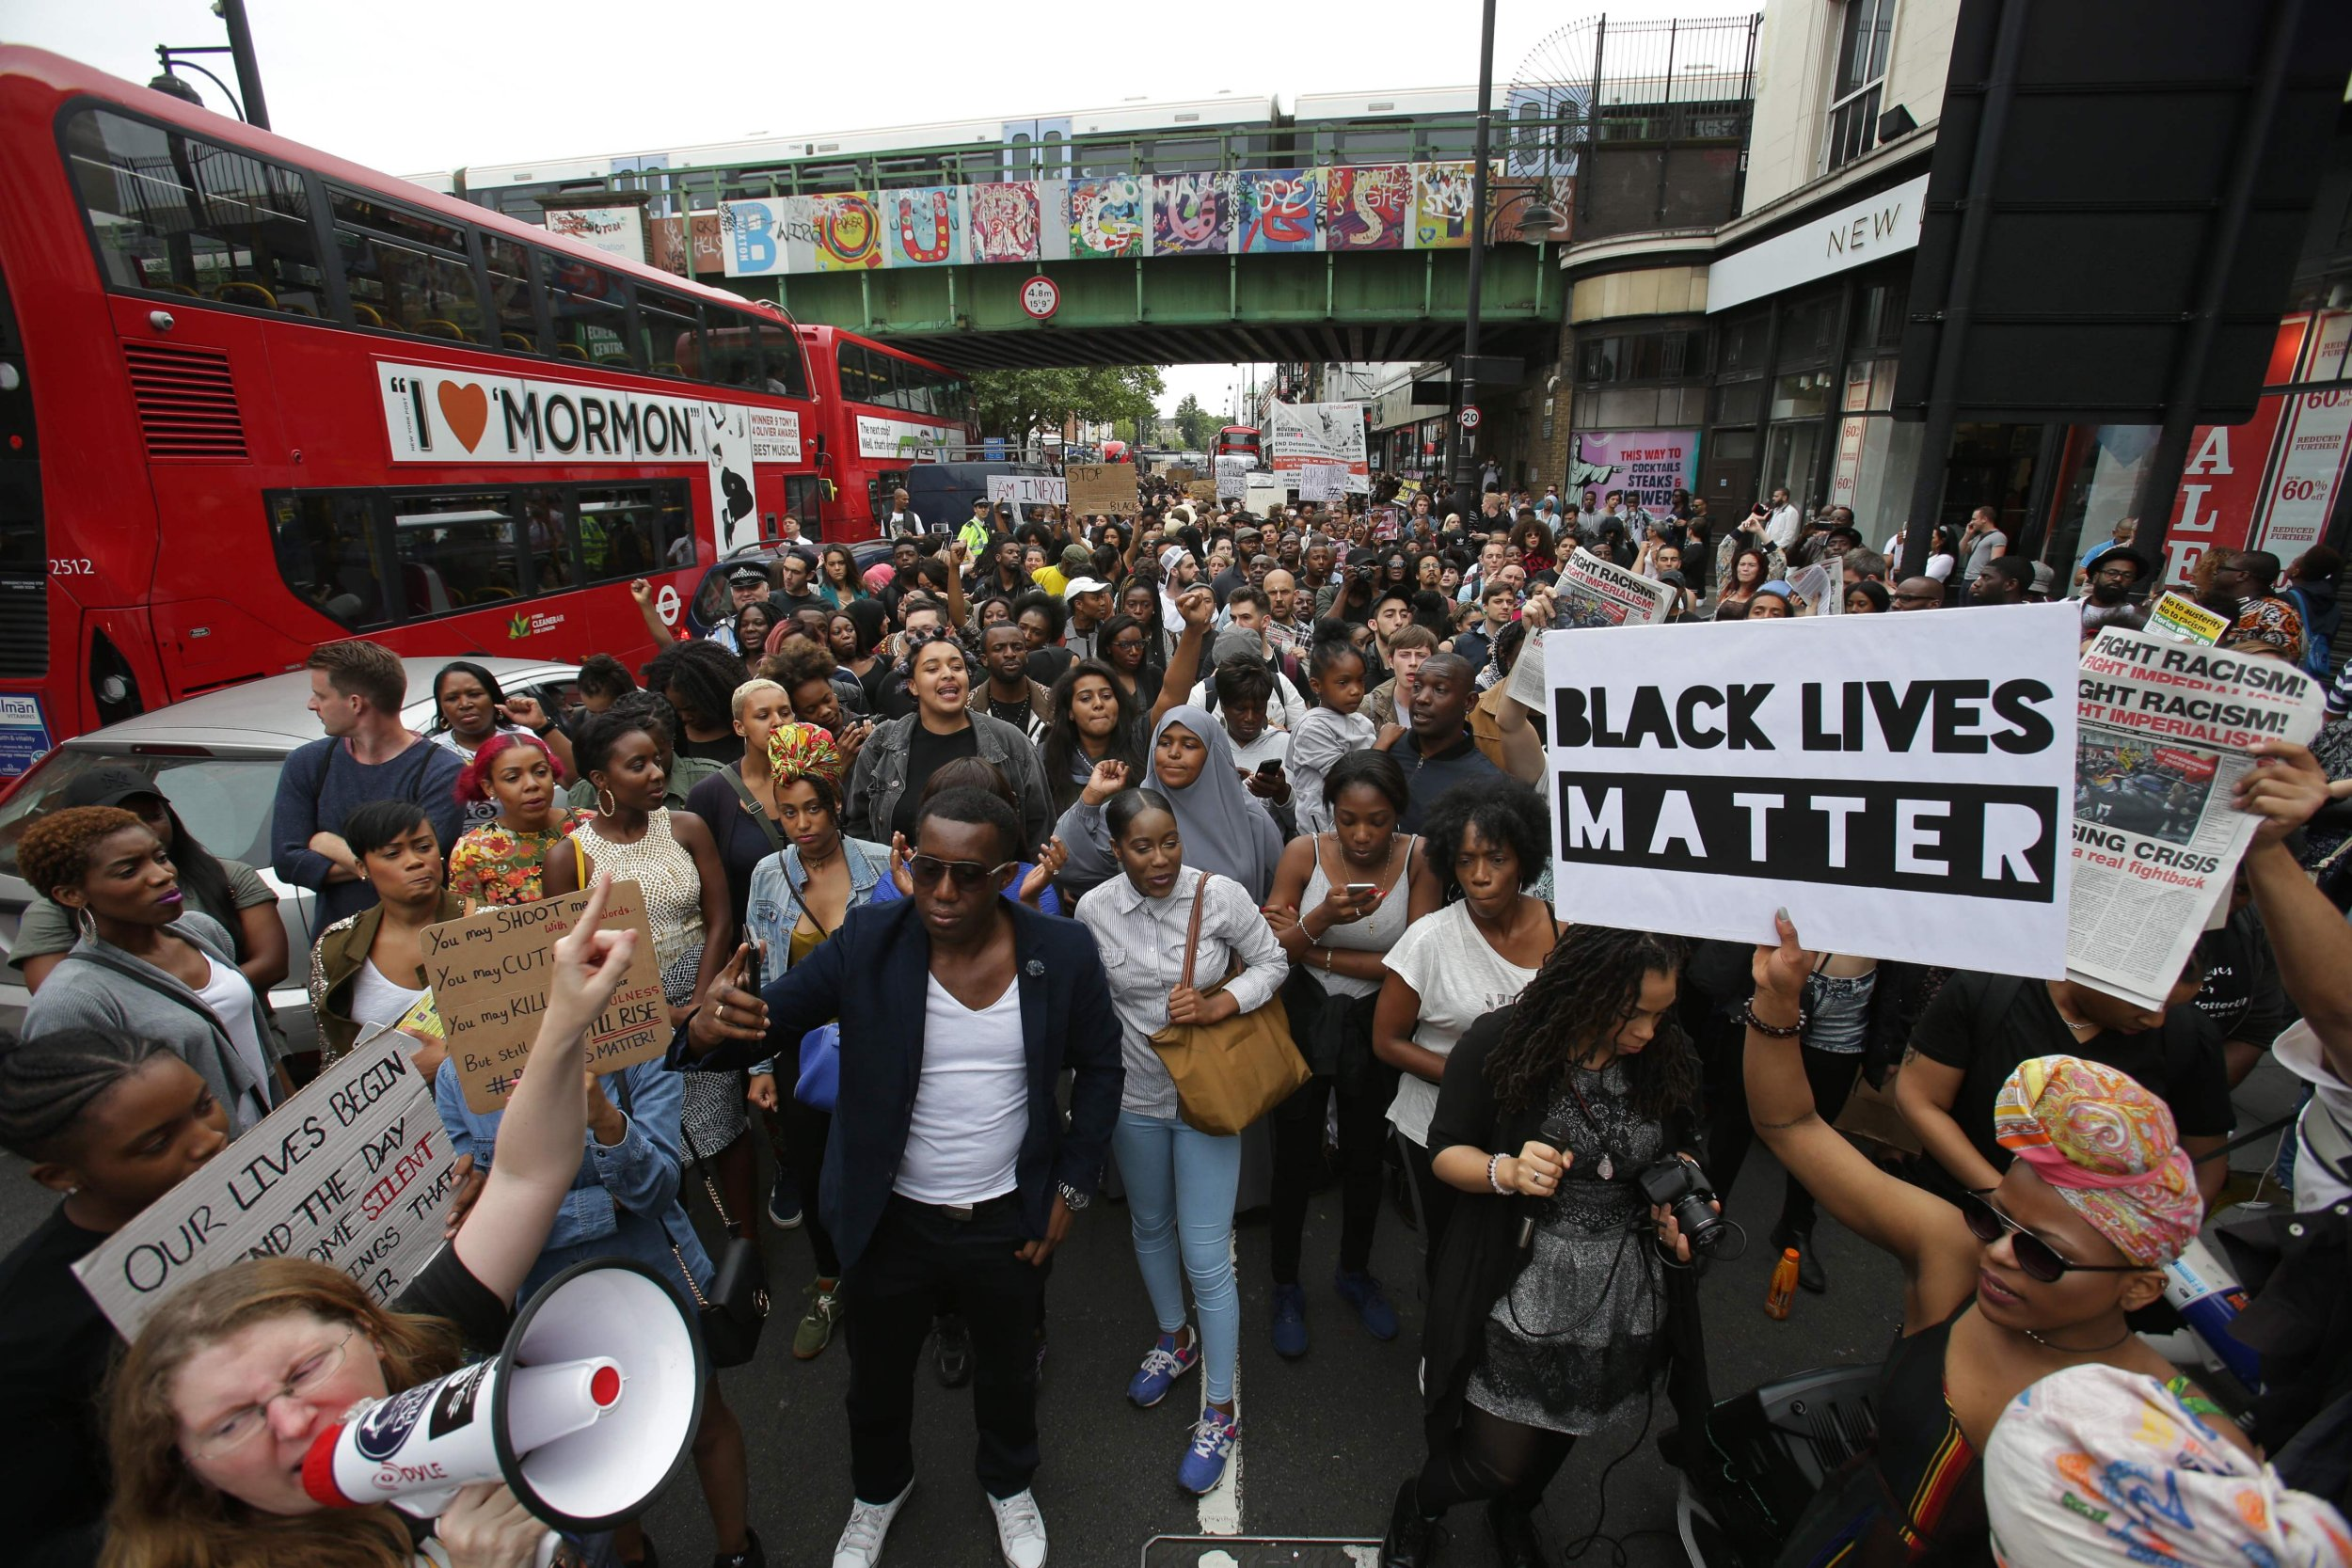 People chant as they march with placards in Brixton, south London to protest against police brutality in the US, on July 9, 2016, after two recent incidents where black men have been shot and killed by police officers. / AFP PHOTO / Daniel Leal-OlivasDANIEL LEAL-OLIVAS/AFP/Getty Images